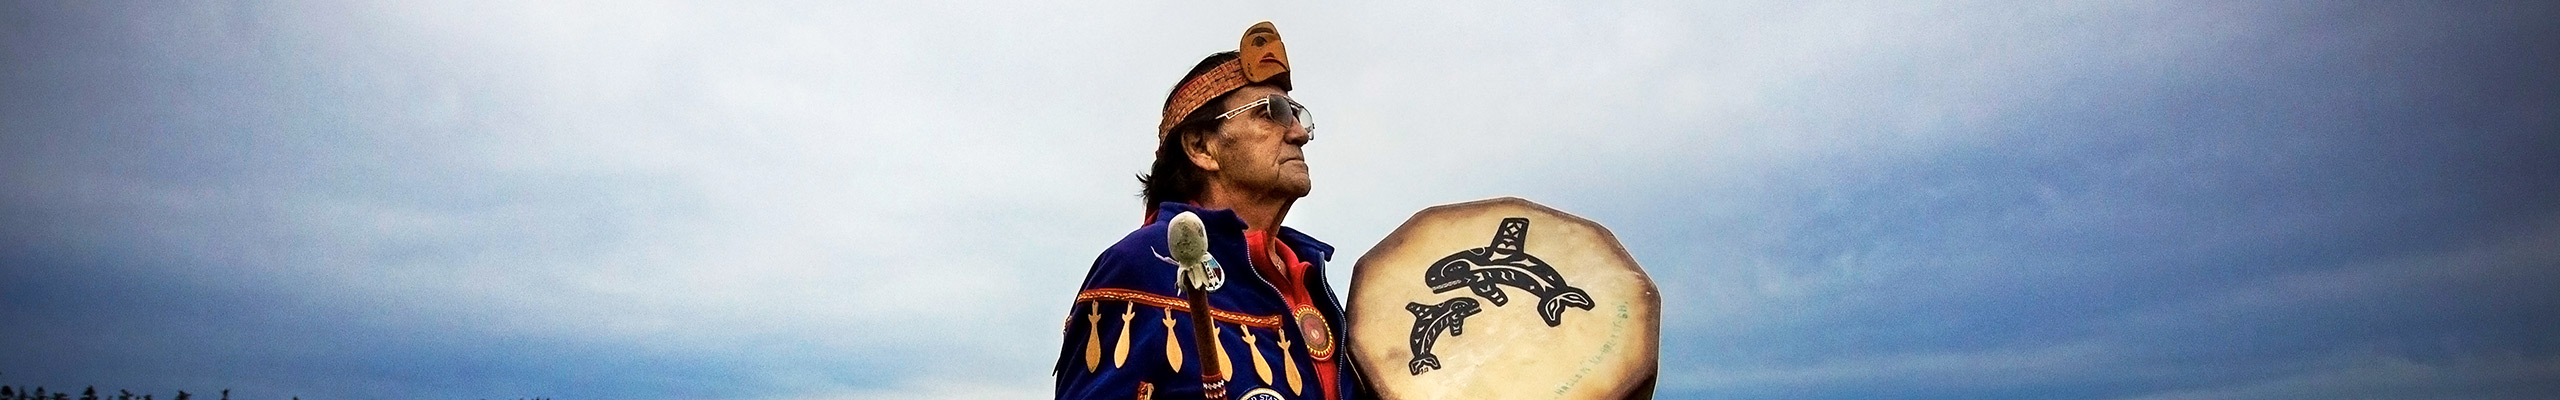 Tulalip Tribes Departments header image